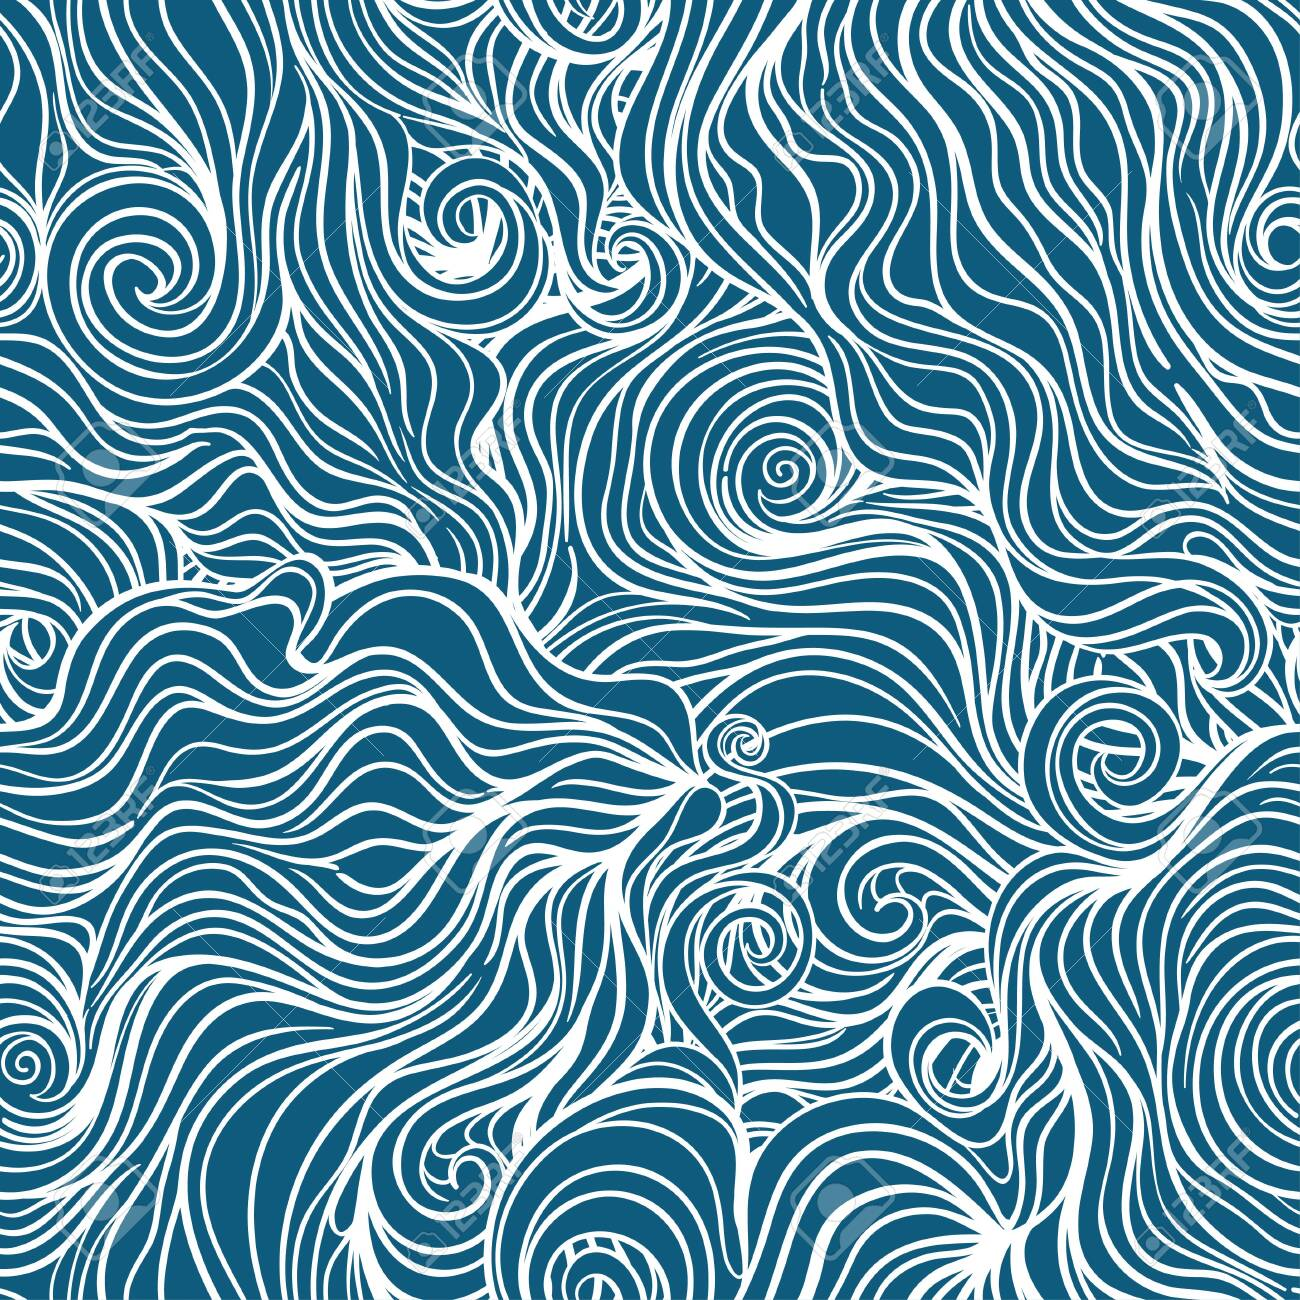 Seamless curl wave background. Vector Illustration - 140115597